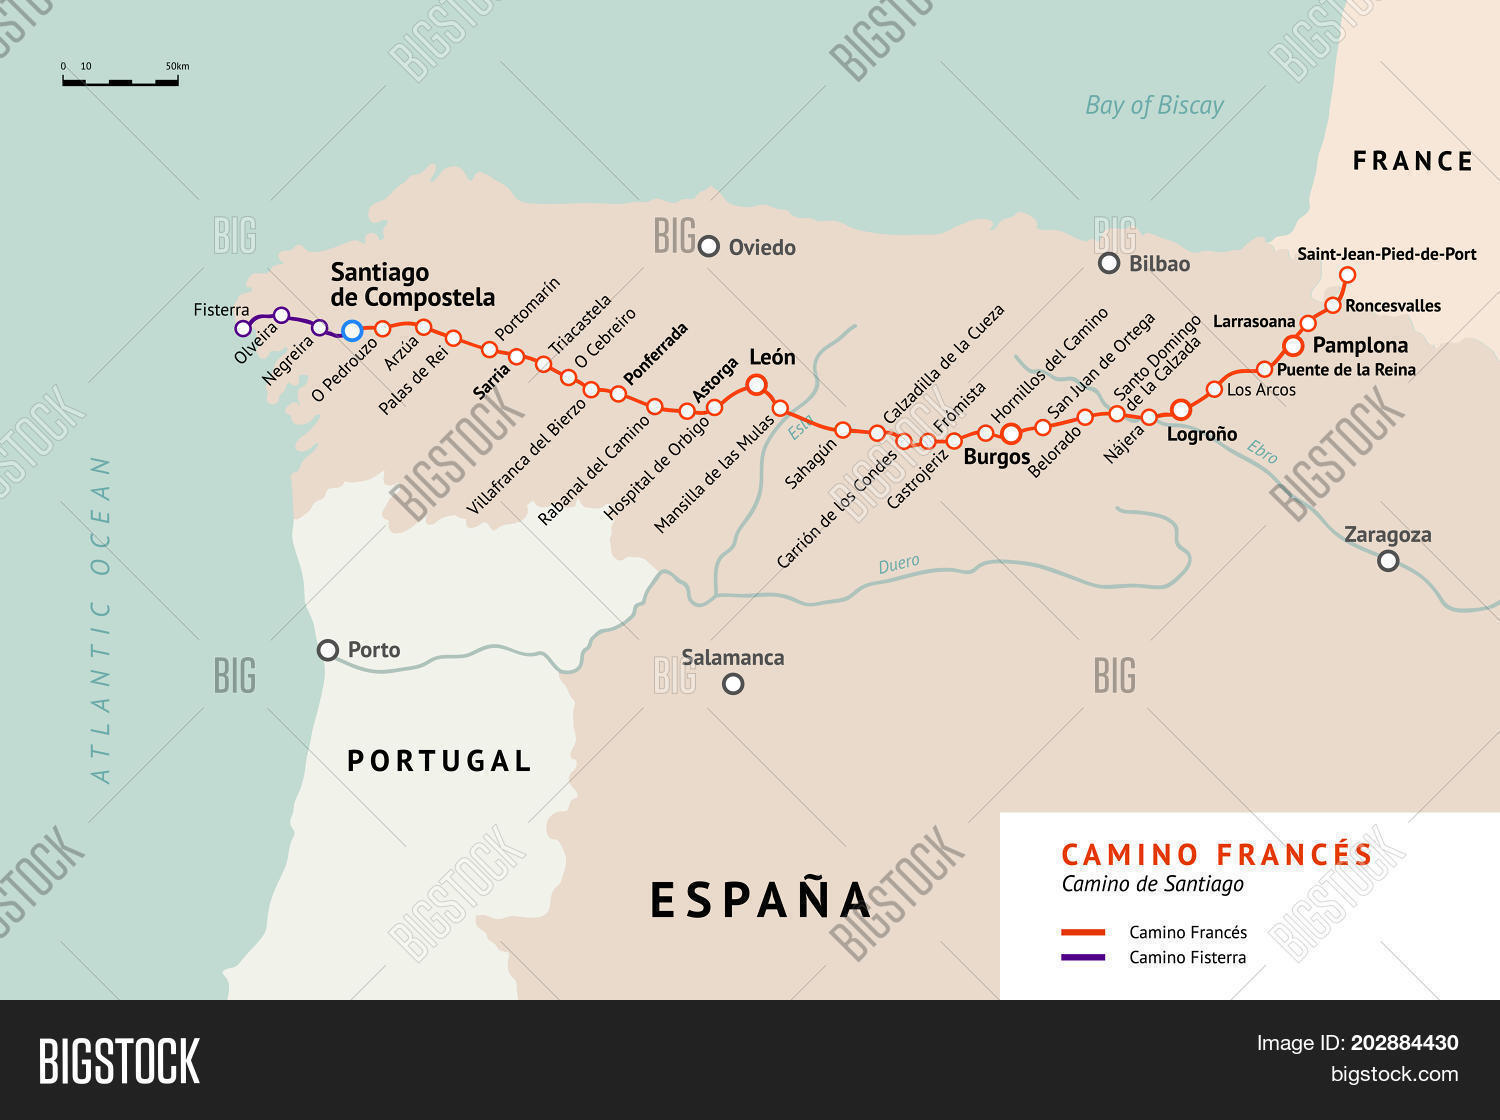 French Way Map  Vector   Photo  Free Trial    Bigstock French Way map  Camino De Santiago or The Way of St James  France